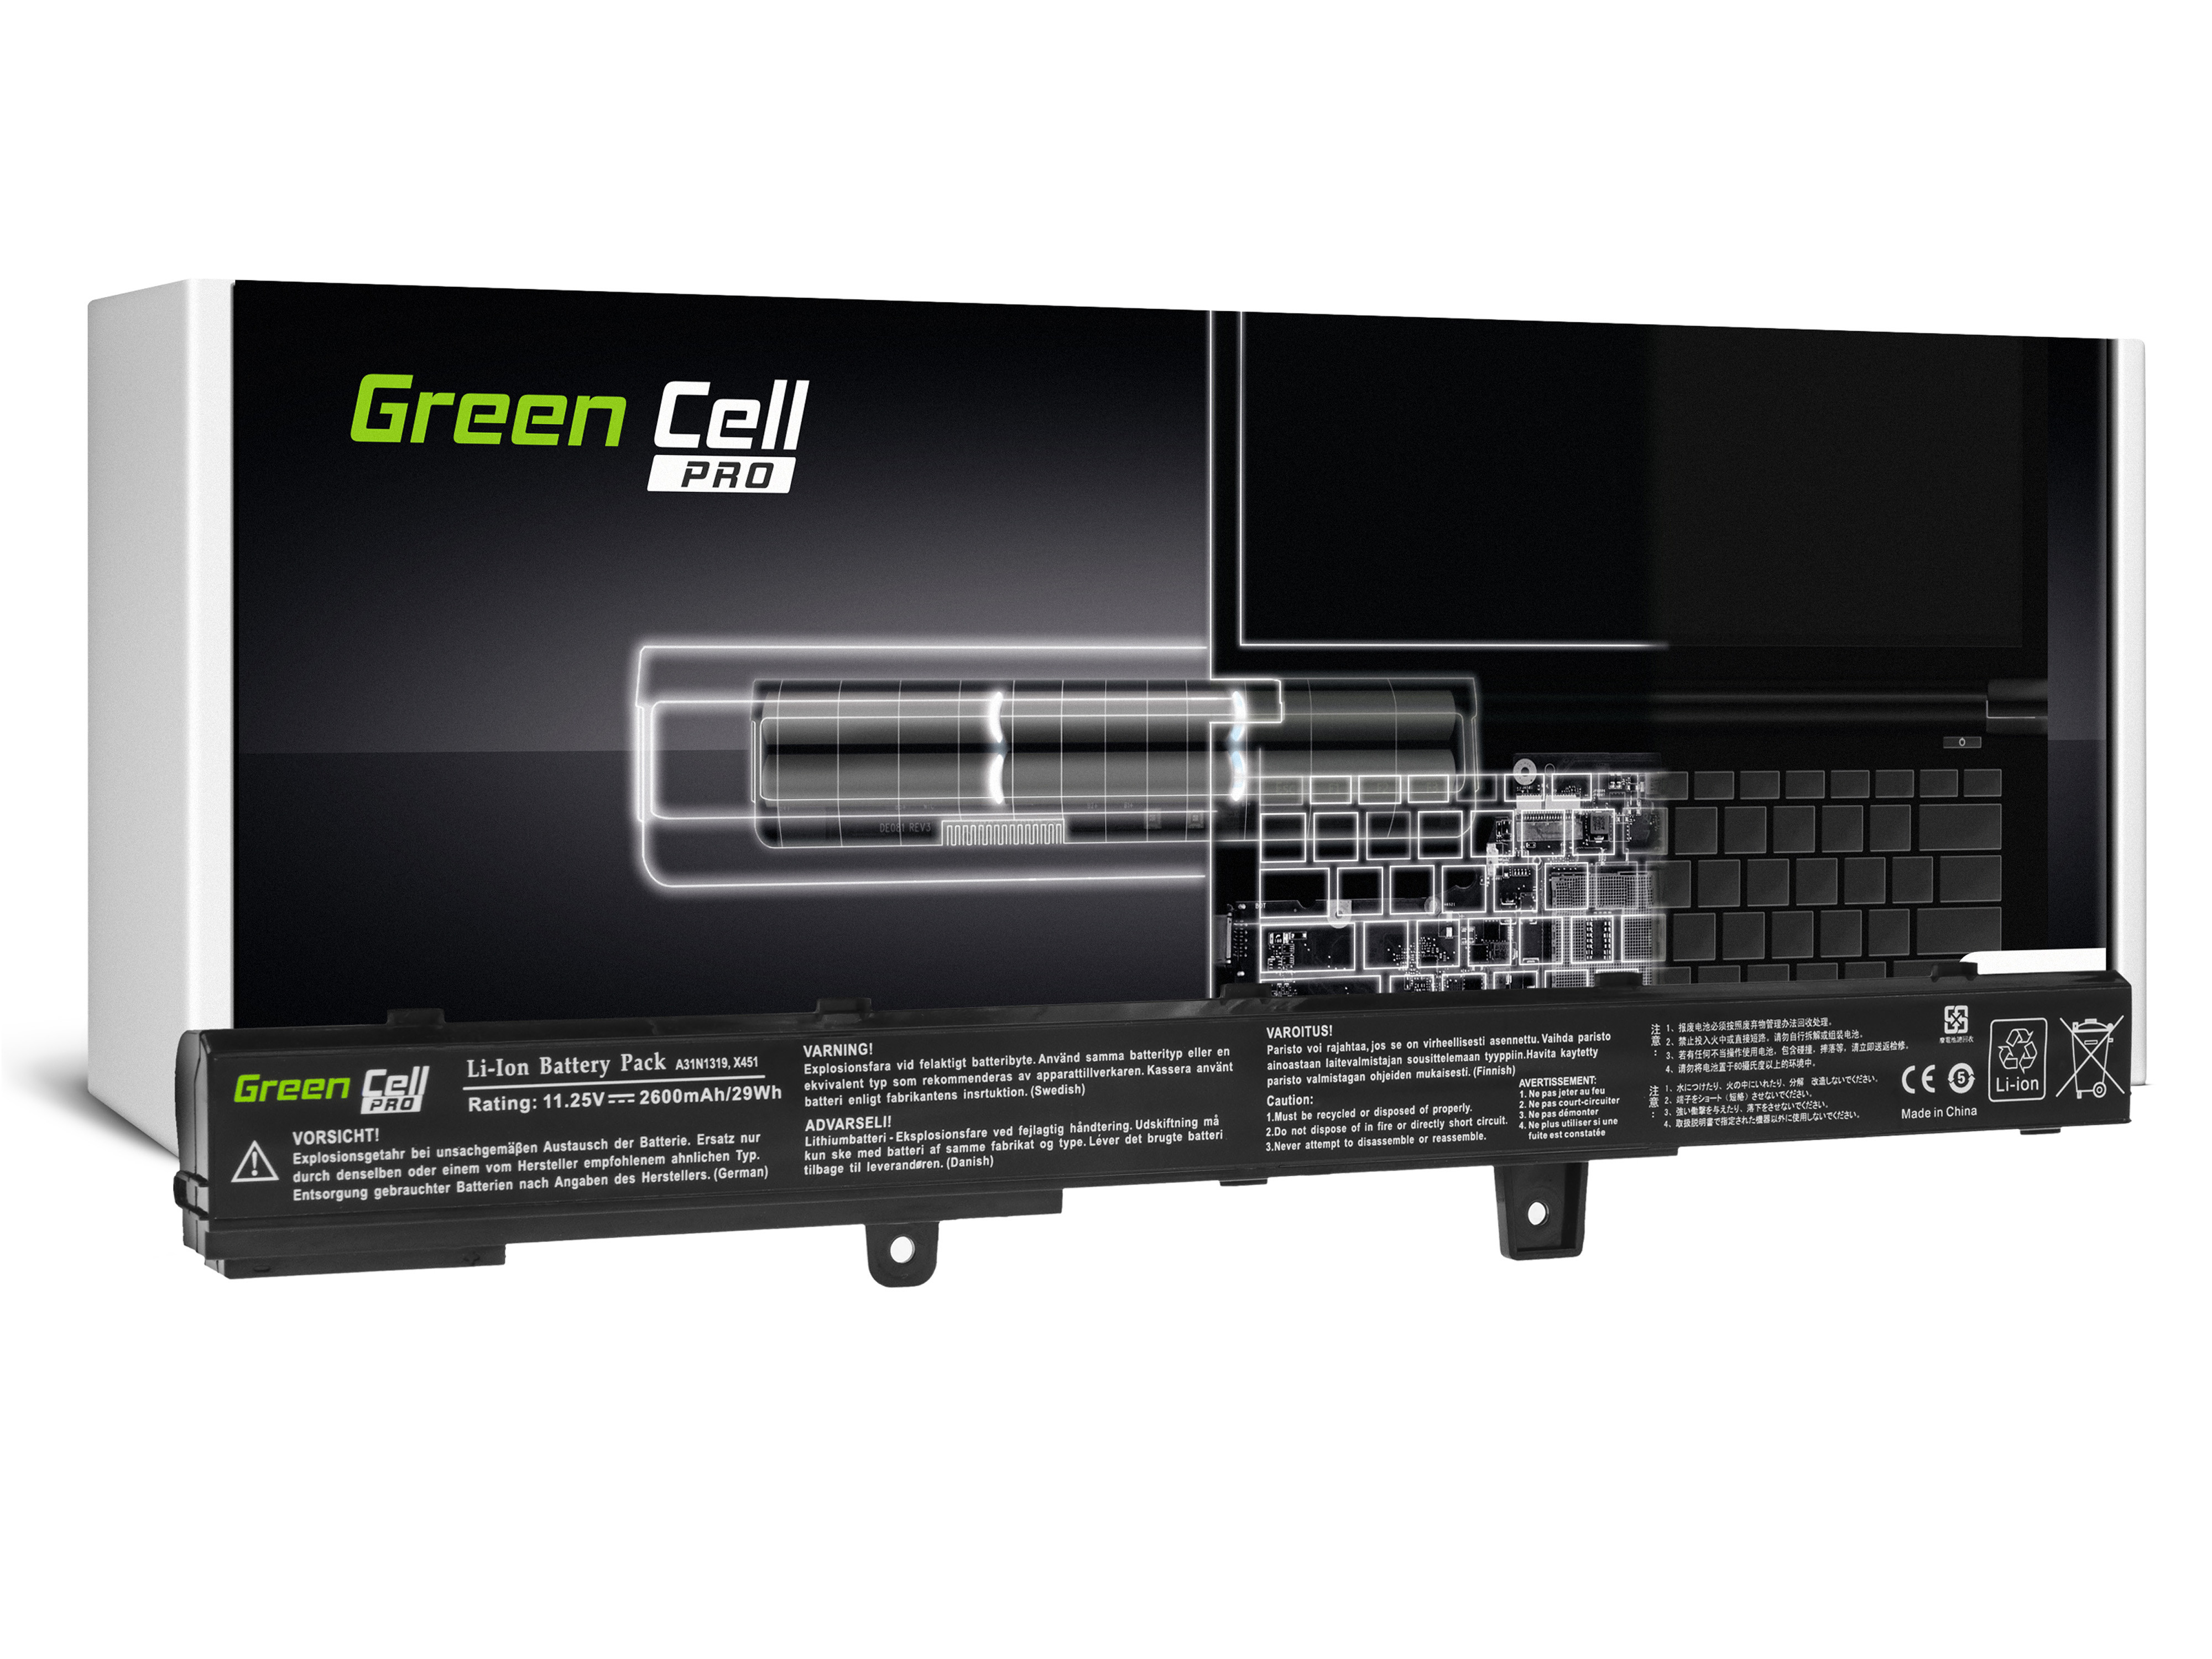 Green Cell AS90PRO Baterie Asus A31N1319,Asus X551 X551C X551CA X551M X551MA X551MAV F551 F551C F551M R512C R512CA R553L 2600mAh Li-ion - neoriginální